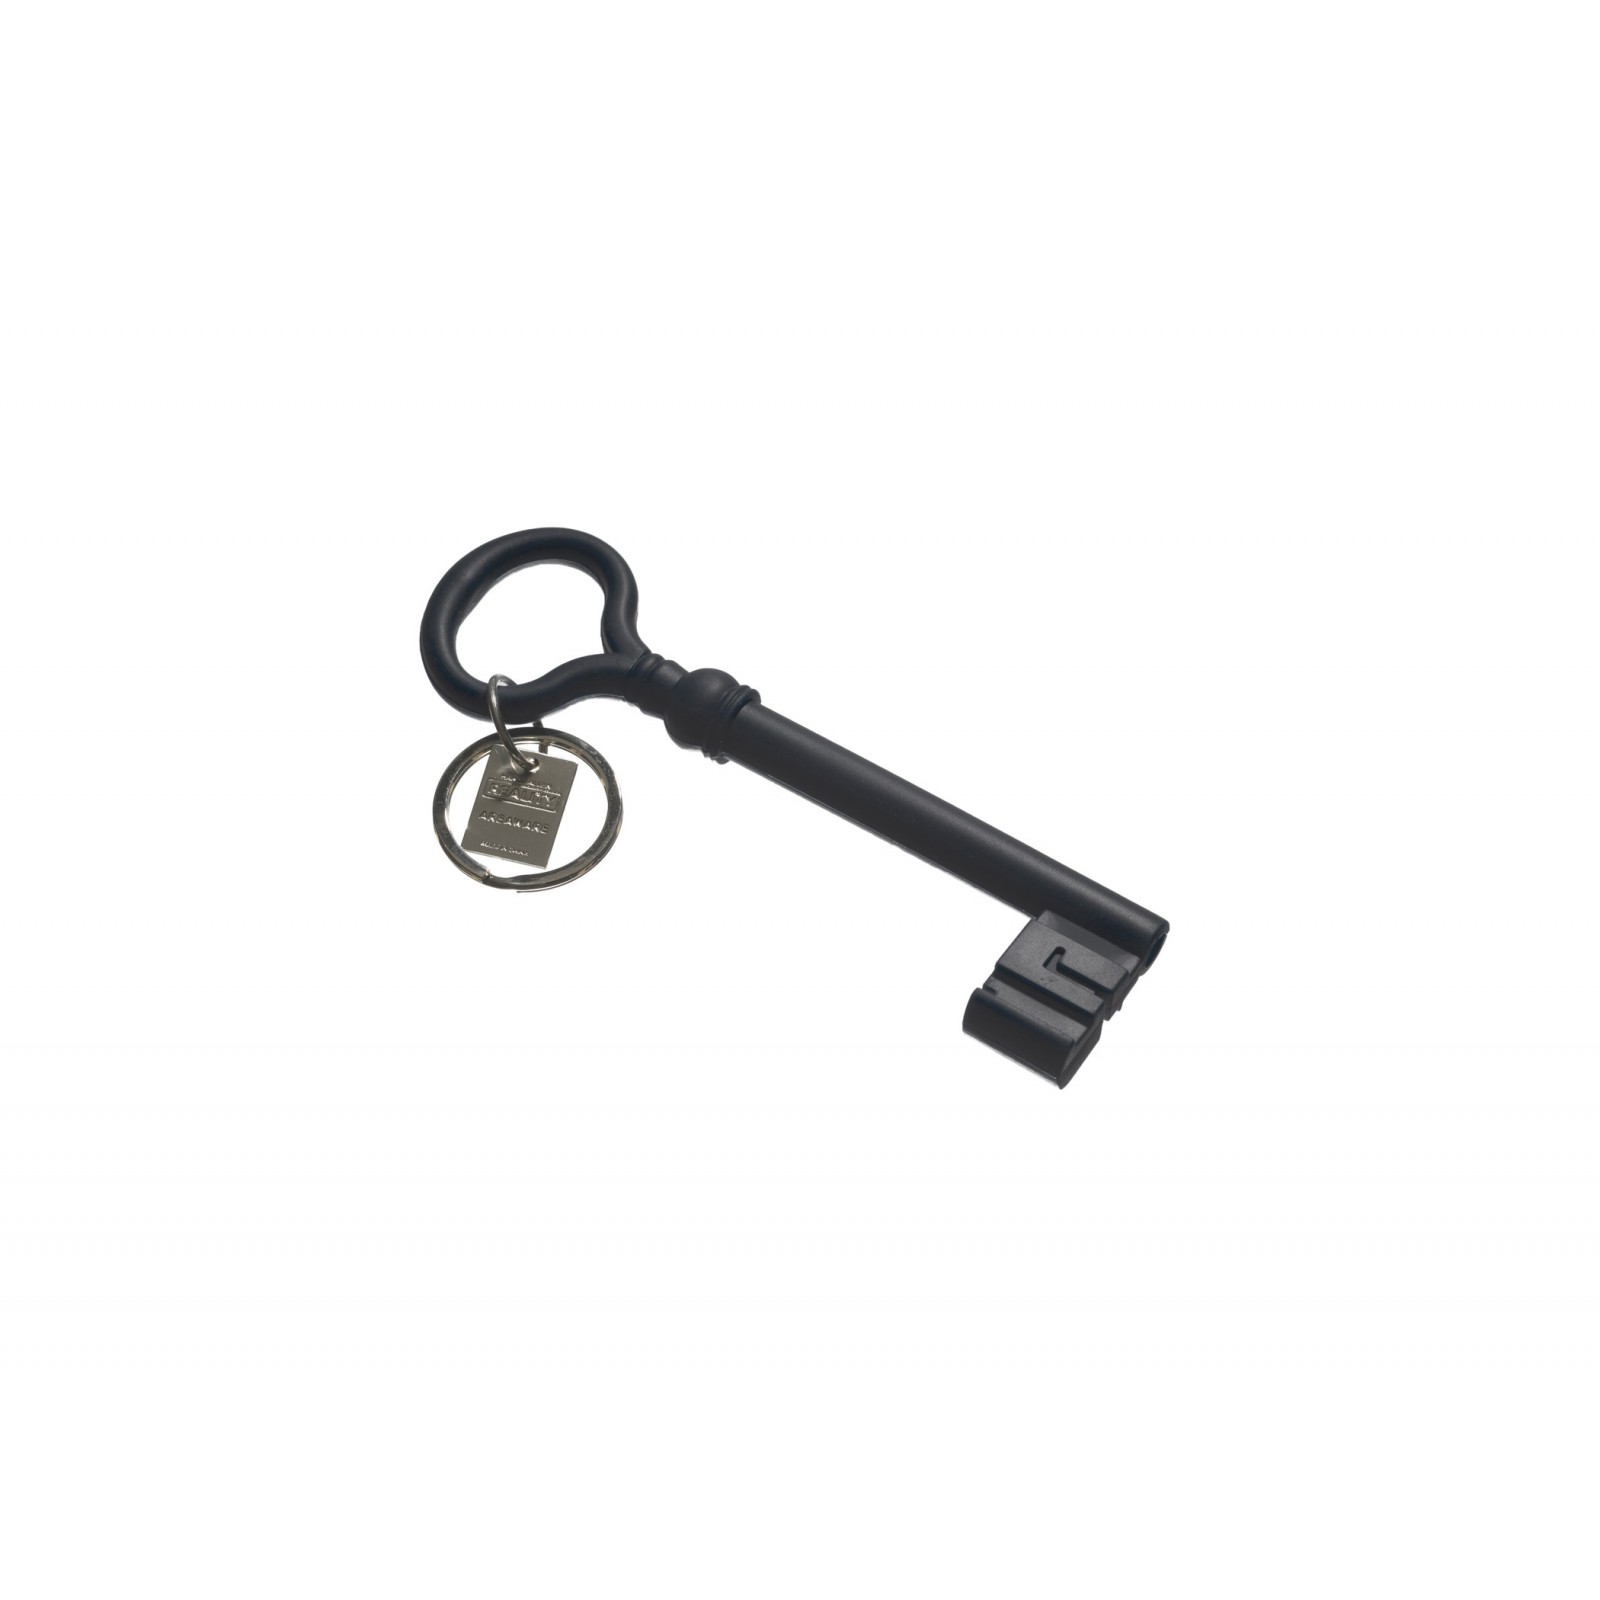 Reality Keychain Key Arne Concept - Porte clefs photo